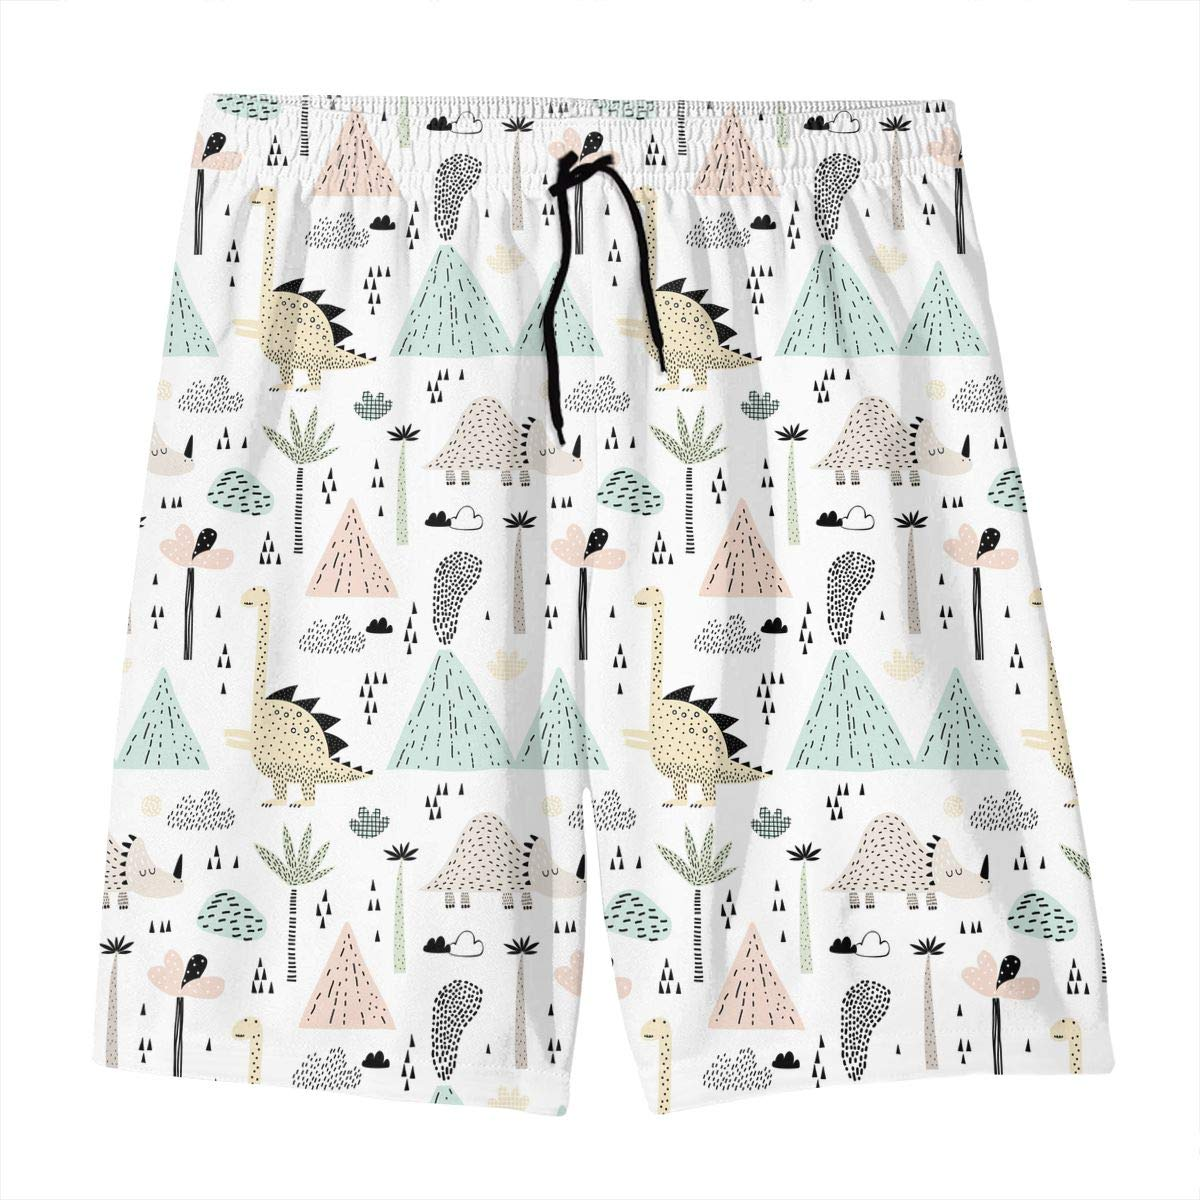 Polyester Bungalow Volcano Dinosaurs Tropical Plants Pattern Swimsuit with Pockets GI80@KU Youth 3D Printed Beach Shorts